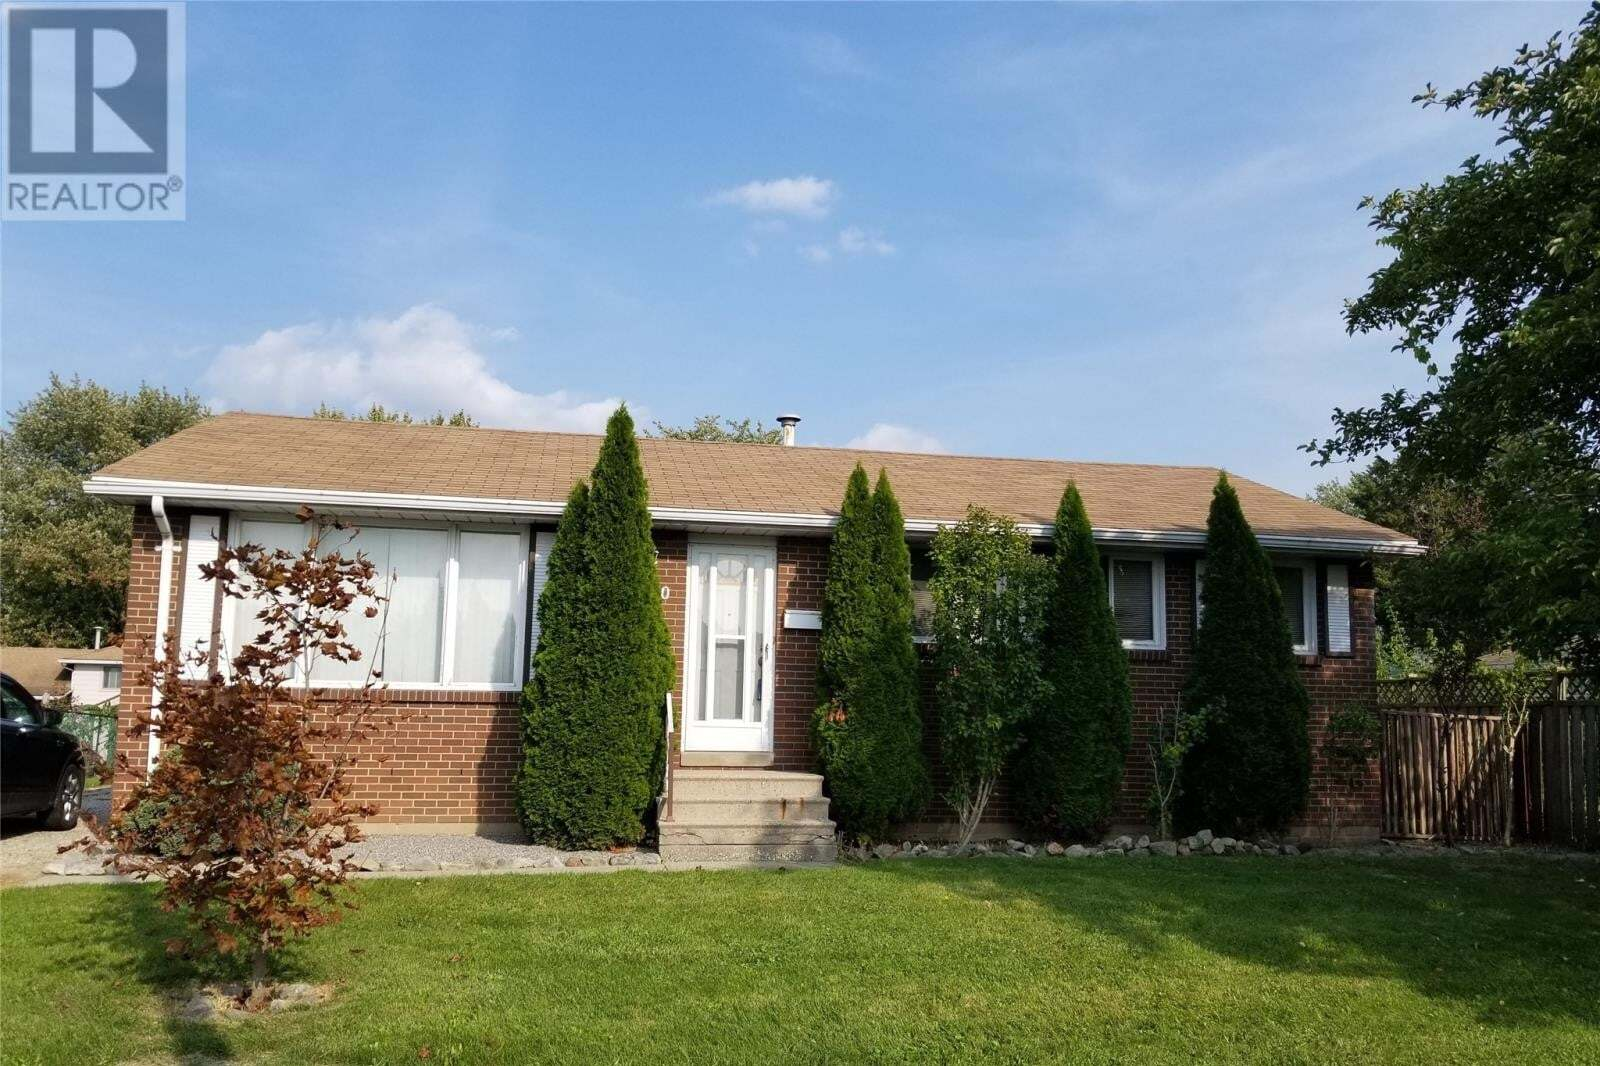 House for sale at 2880 Rivard Ave Windsor Ontario - MLS: 20012599